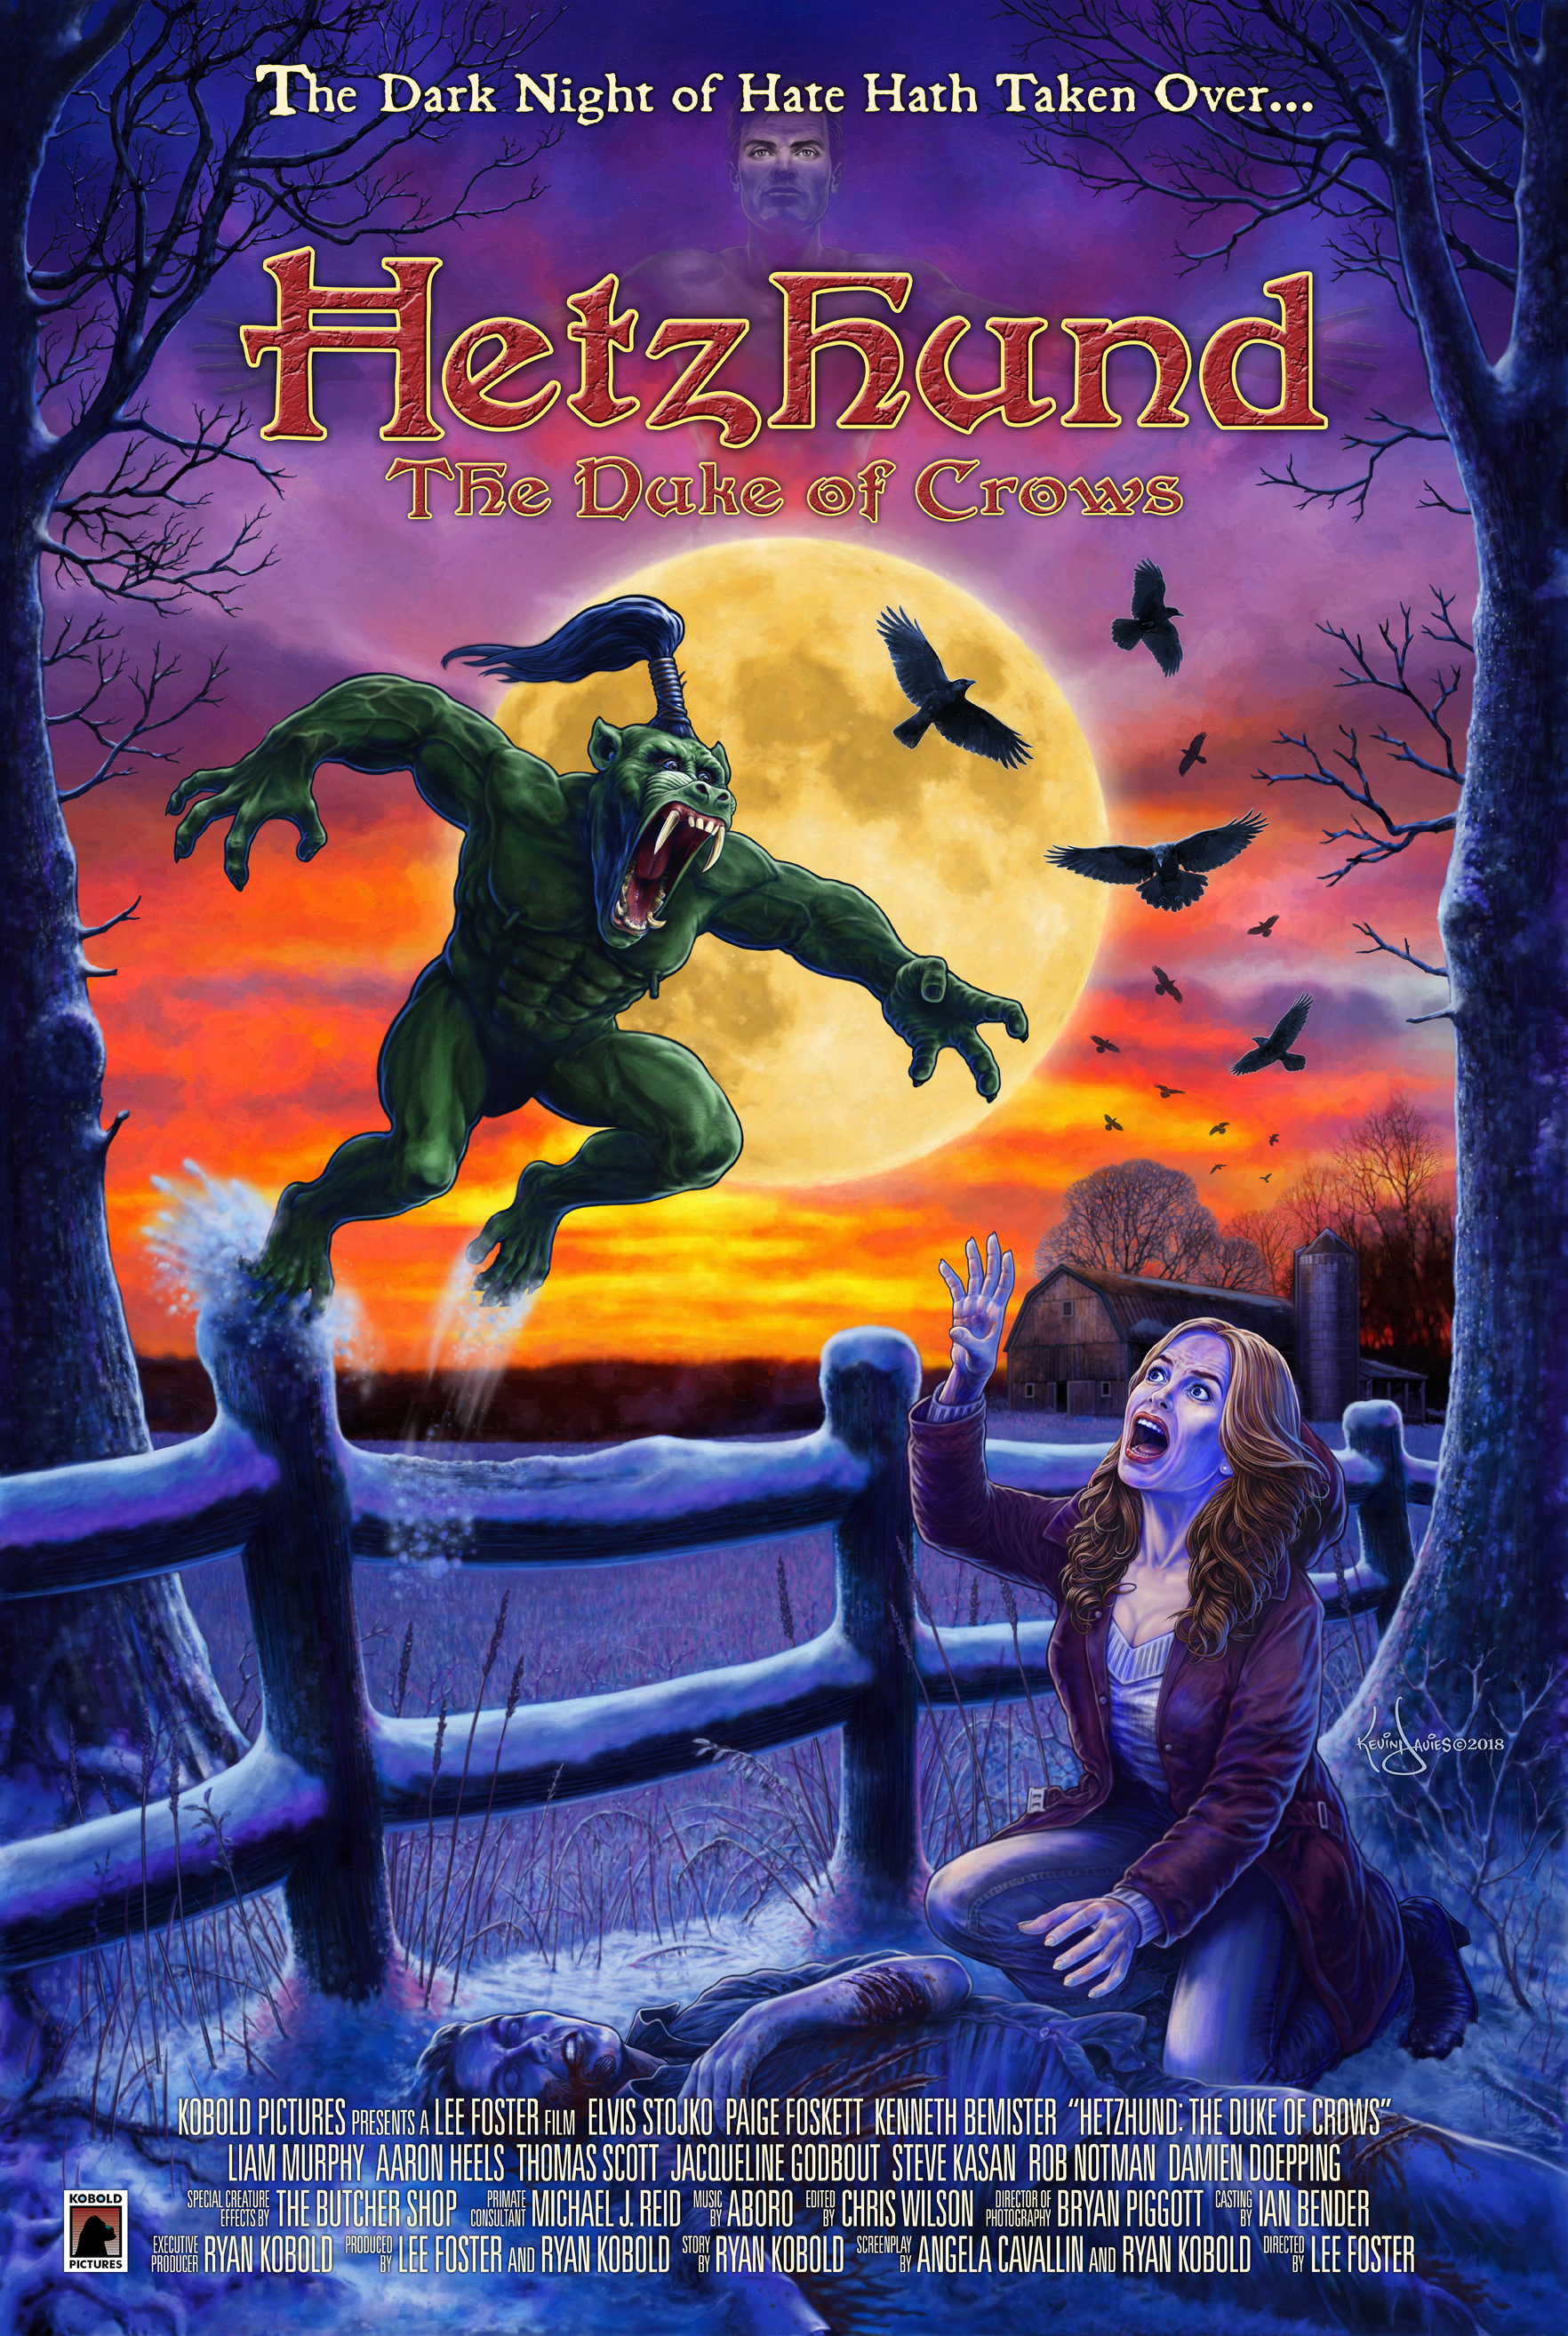 Hetzhund: The Duke of Crows  follows a young pastor (Elvis Stojko) in his journey to stop a terribly evil as it rampages across a small country village, leaving only death in its wake.